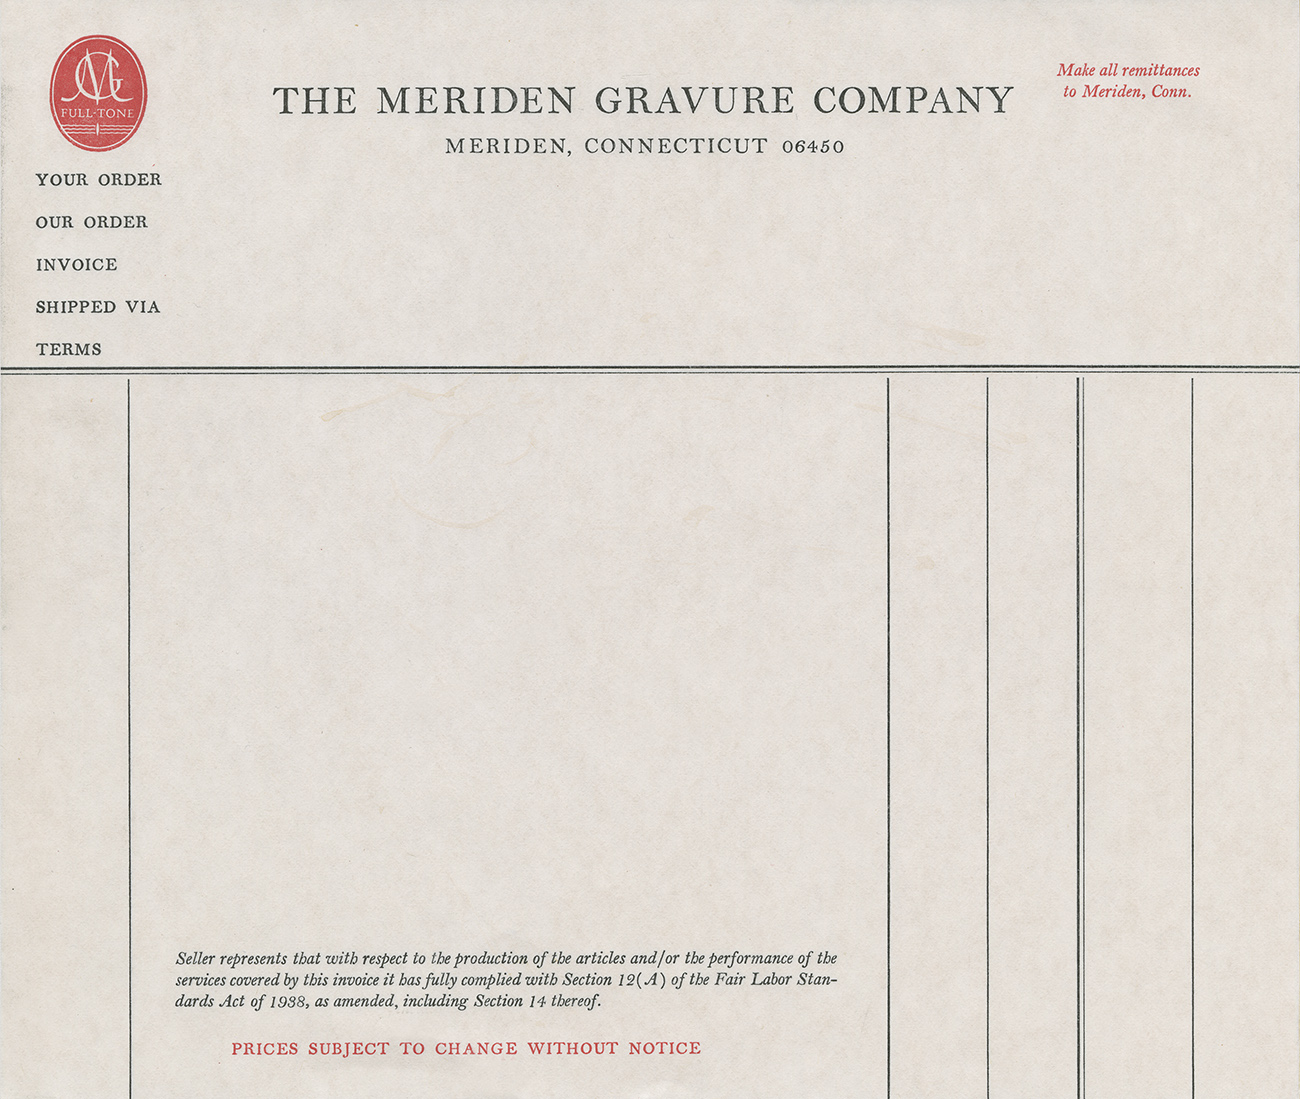 Invoice from the Meriden Gravure Company from the 1940s